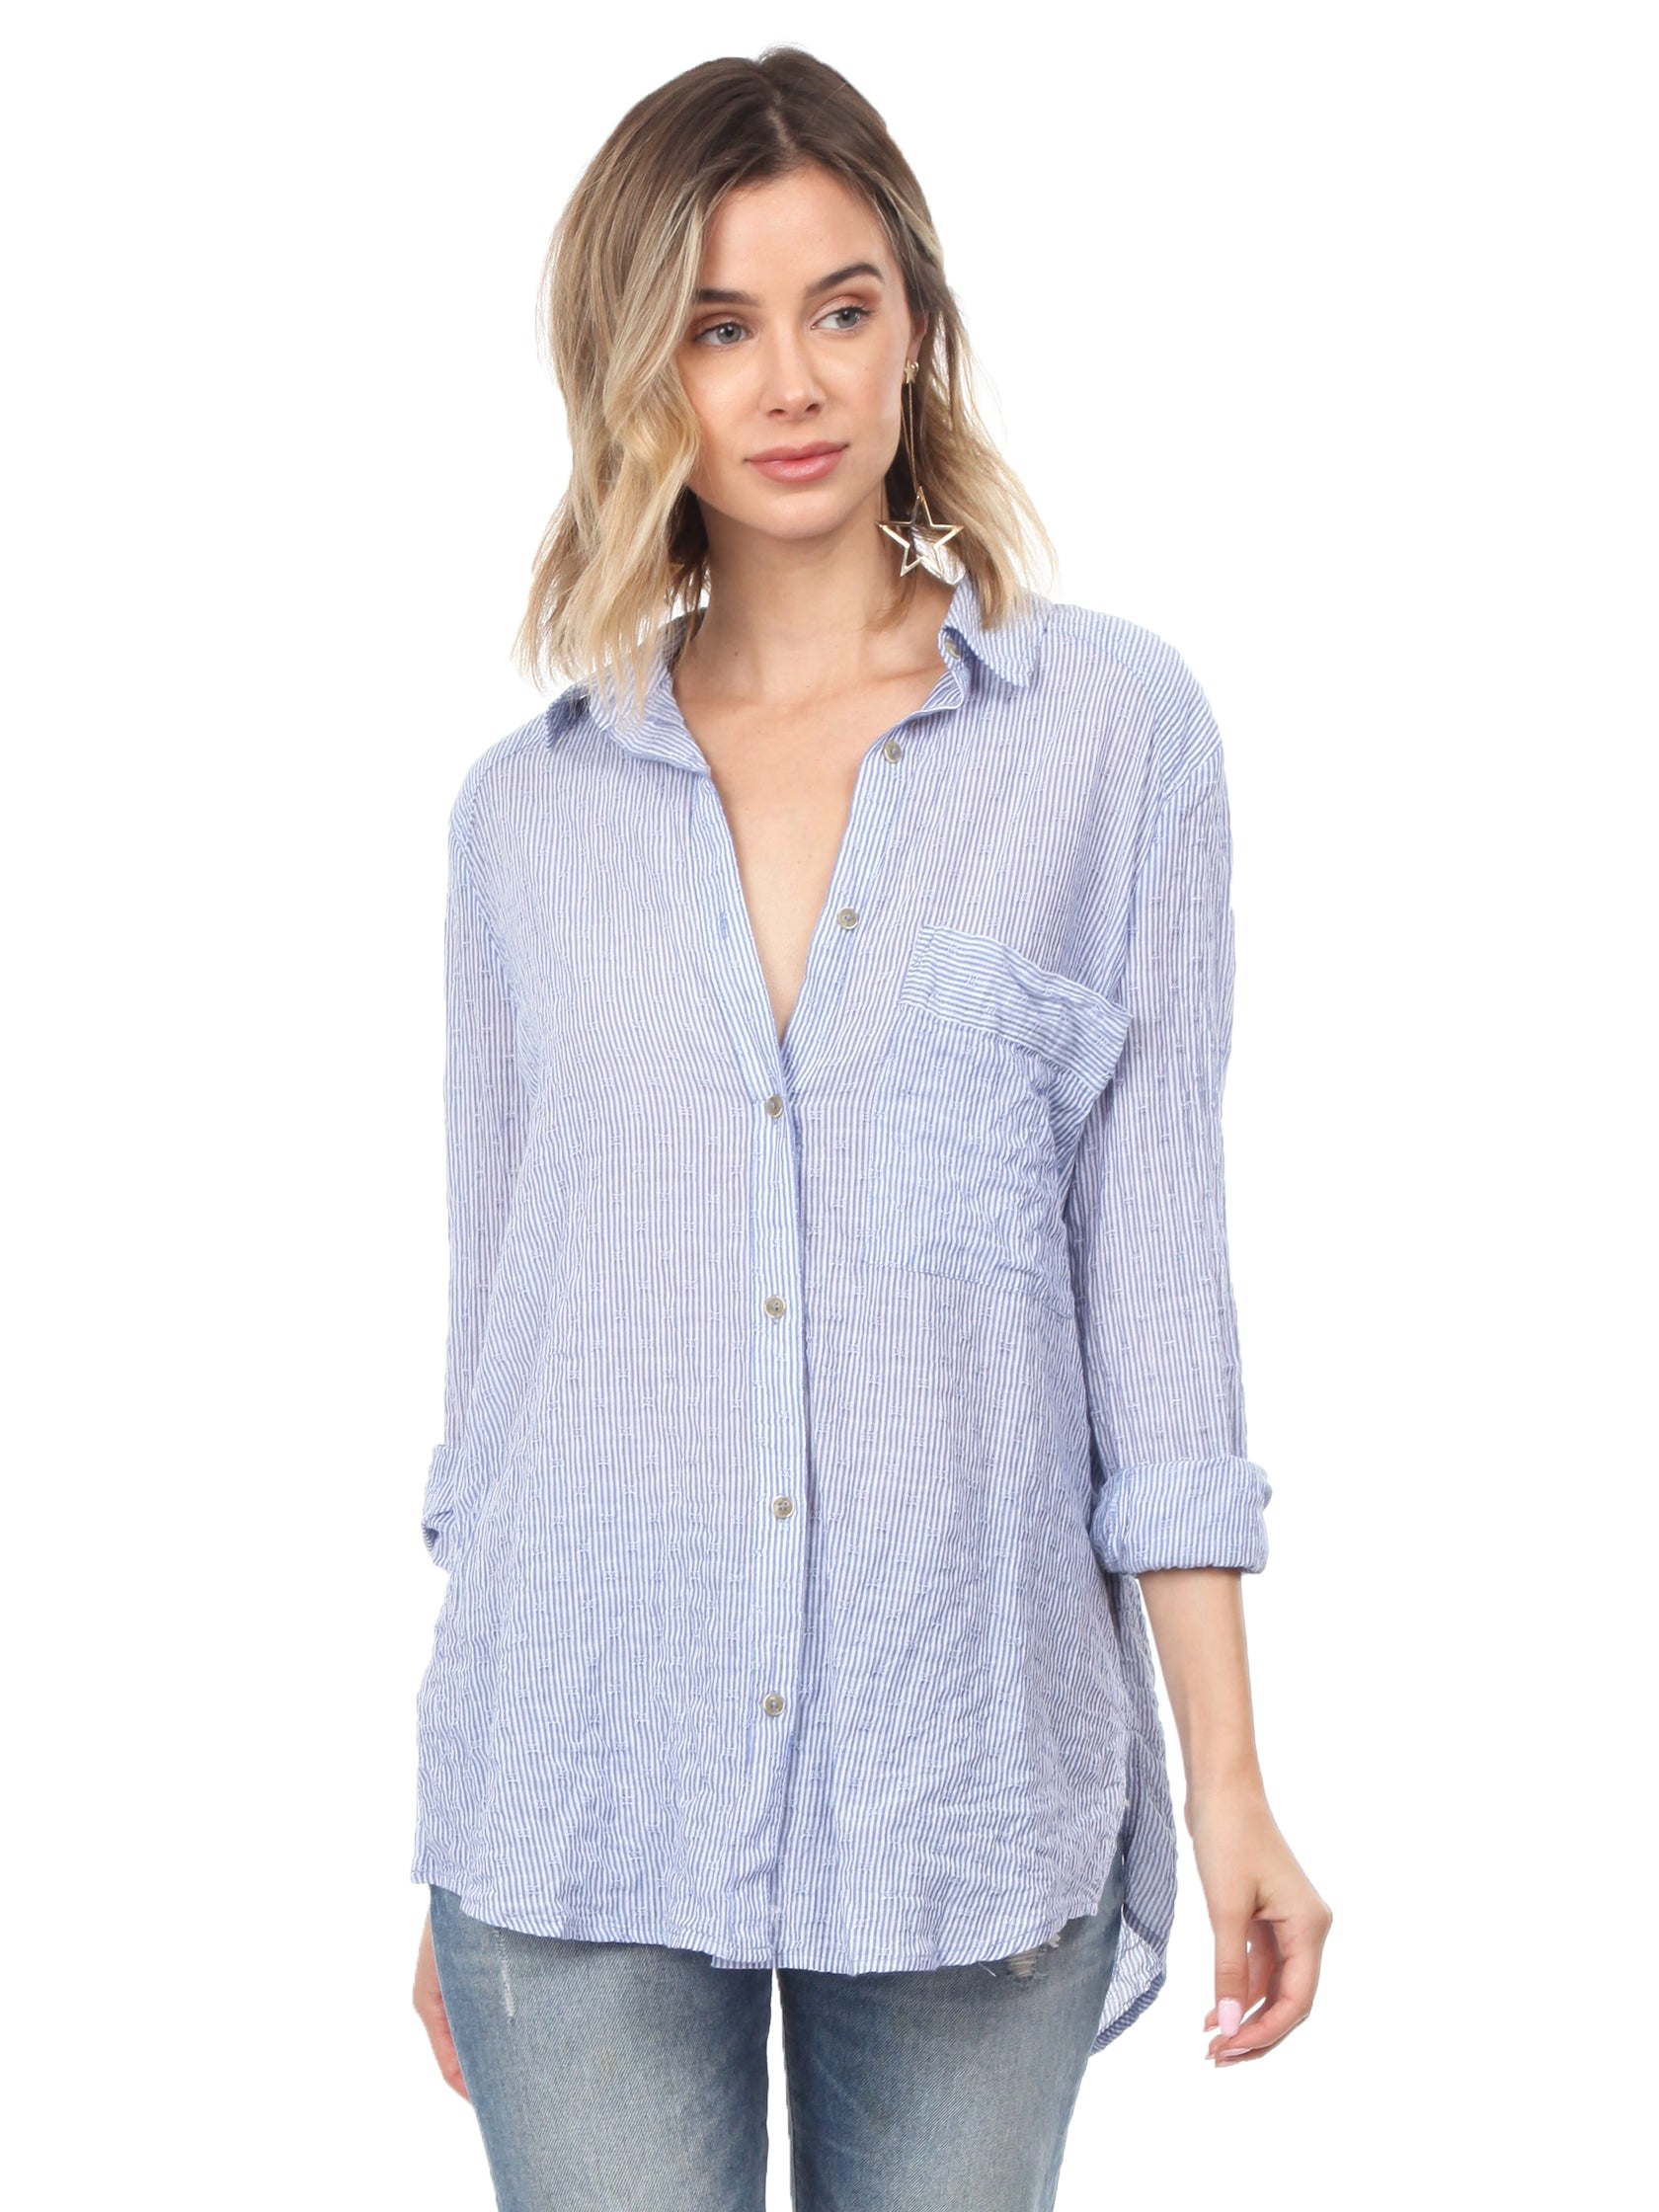 Women outfit in a top rental from Free People called No Limits Stripe Stretch Cotton Shirt